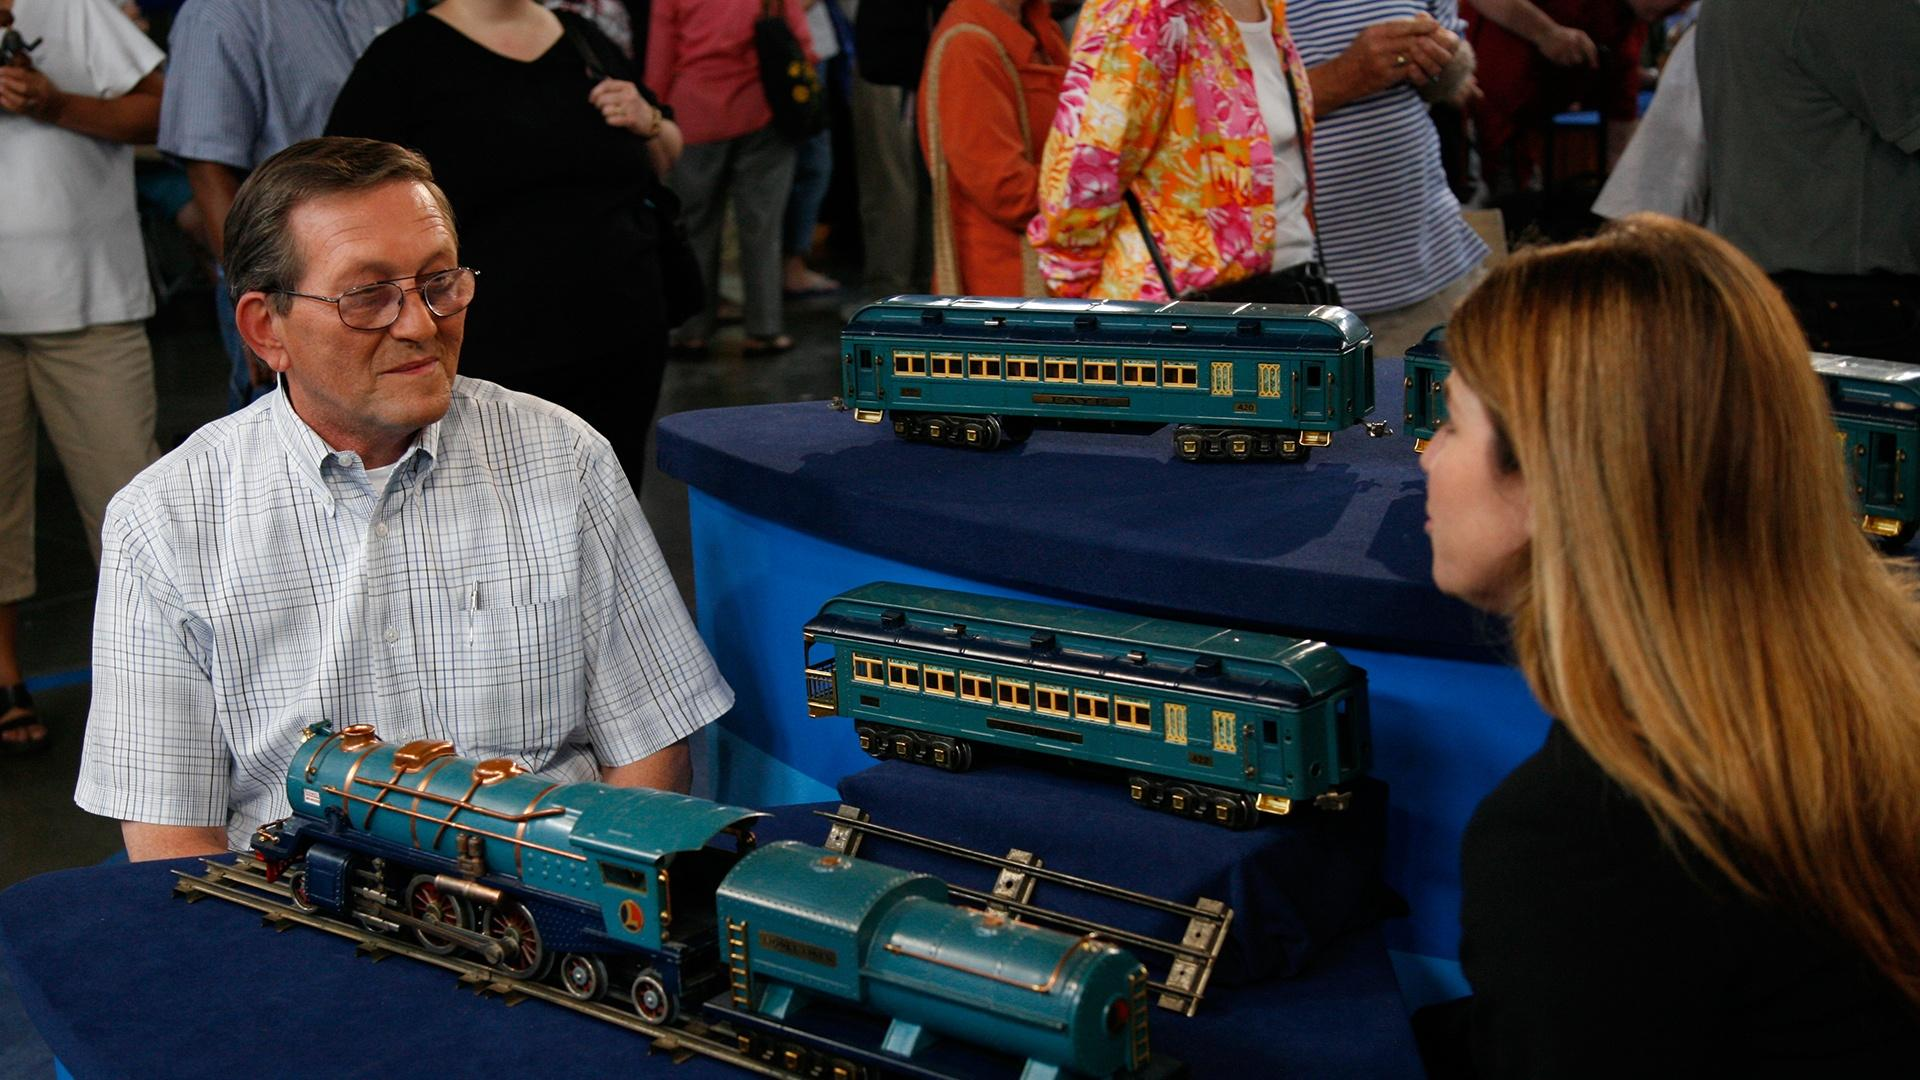 Antiques Roadshow - Twin Cities PBS